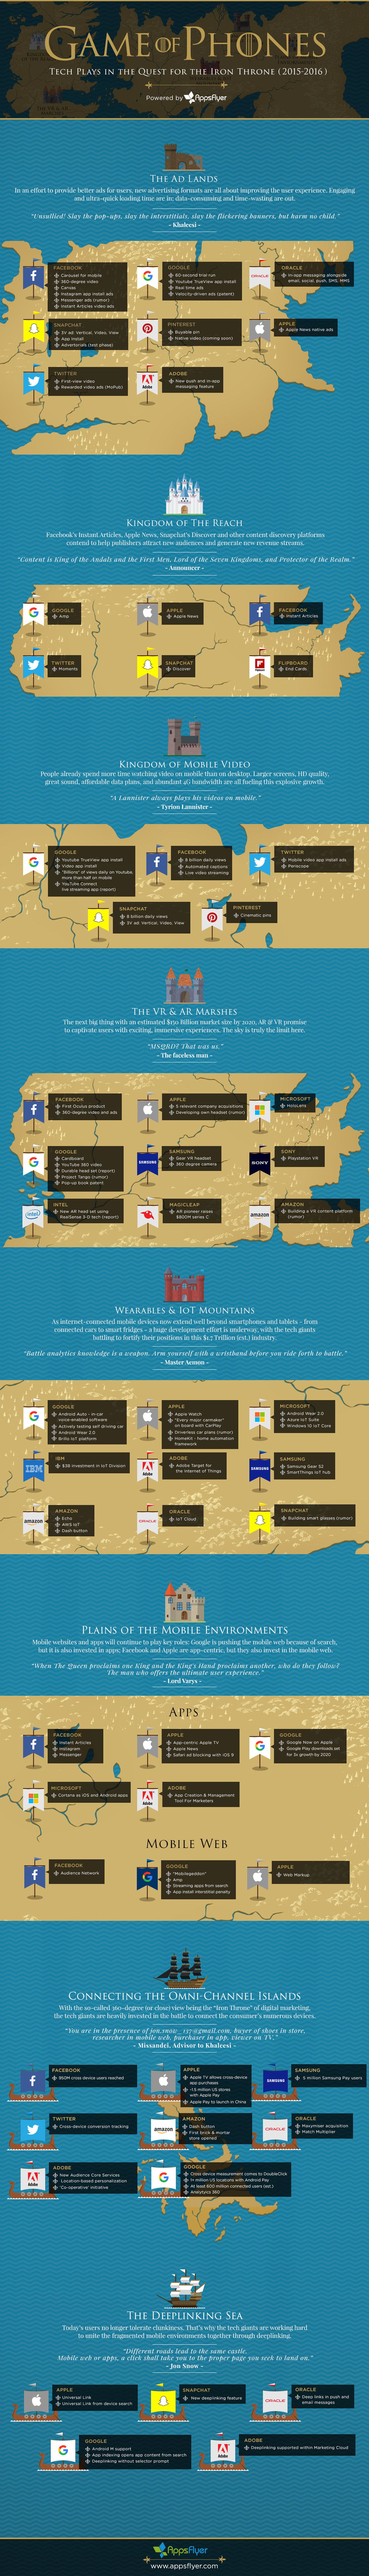 Game of Phones: Tech Plays in the Quest for the Iron Throne [Infographic] | Social Media Today